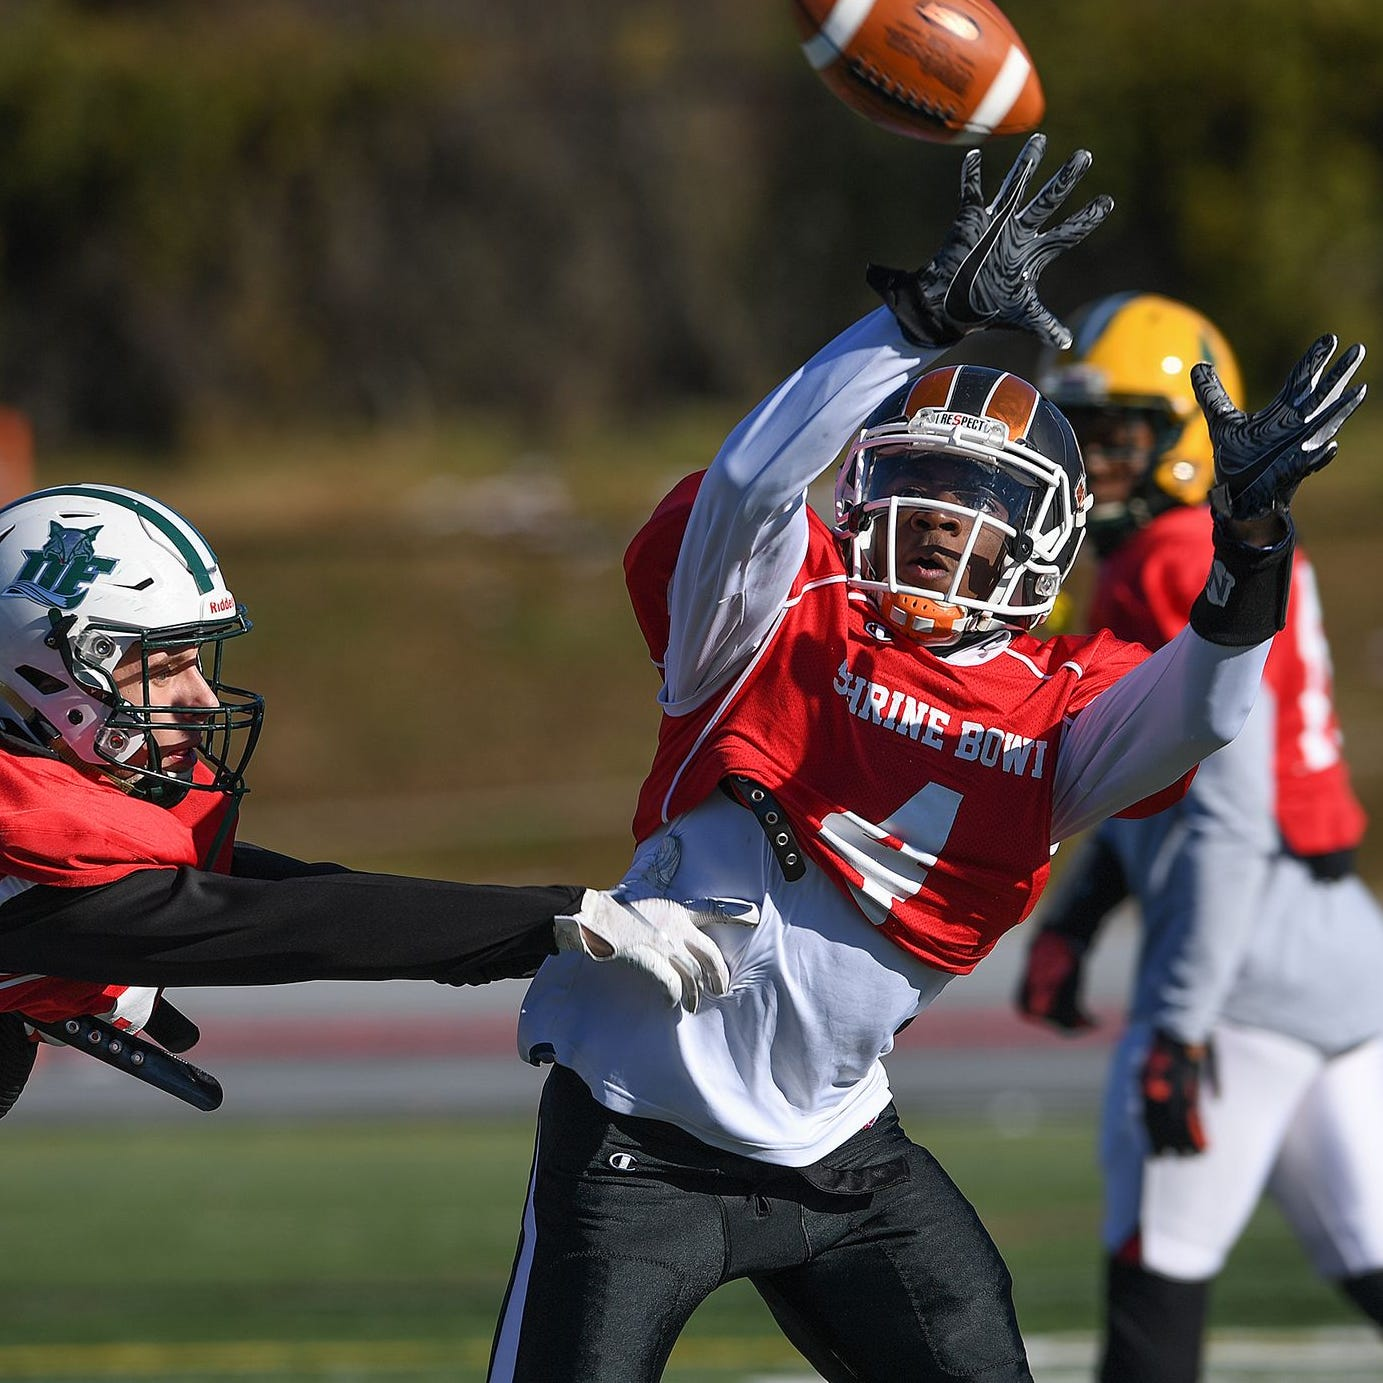 Southside wide receiver Jalon Calhoun (4) tries to pull in a pass in past Dutch Fork defensive back Hugh Ryan (24) during South Carolina's Shrine Bowl practice Tuesday.